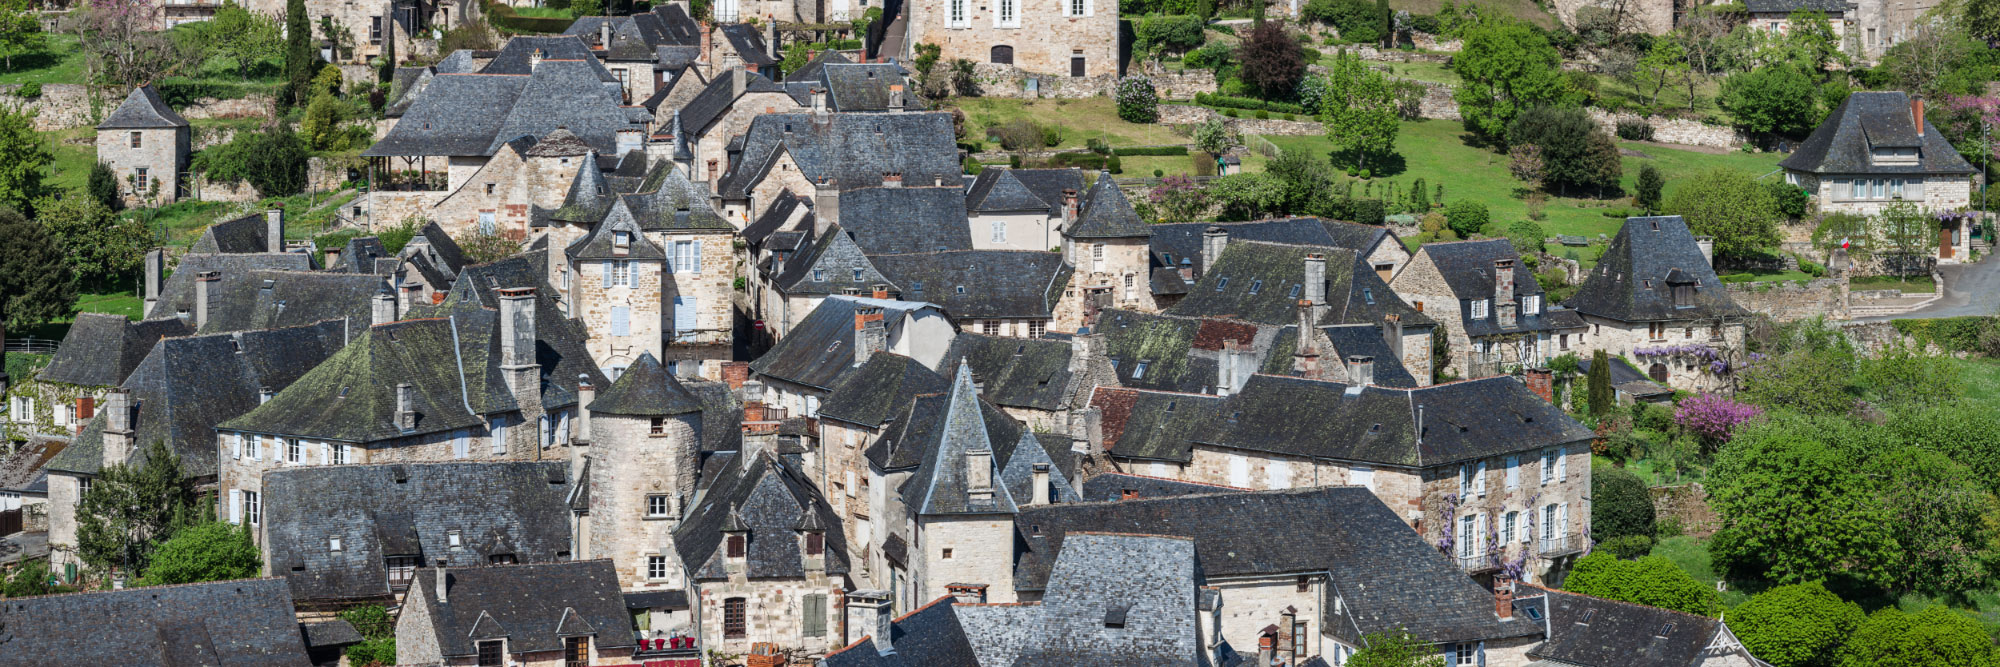 Turenne, Limousin